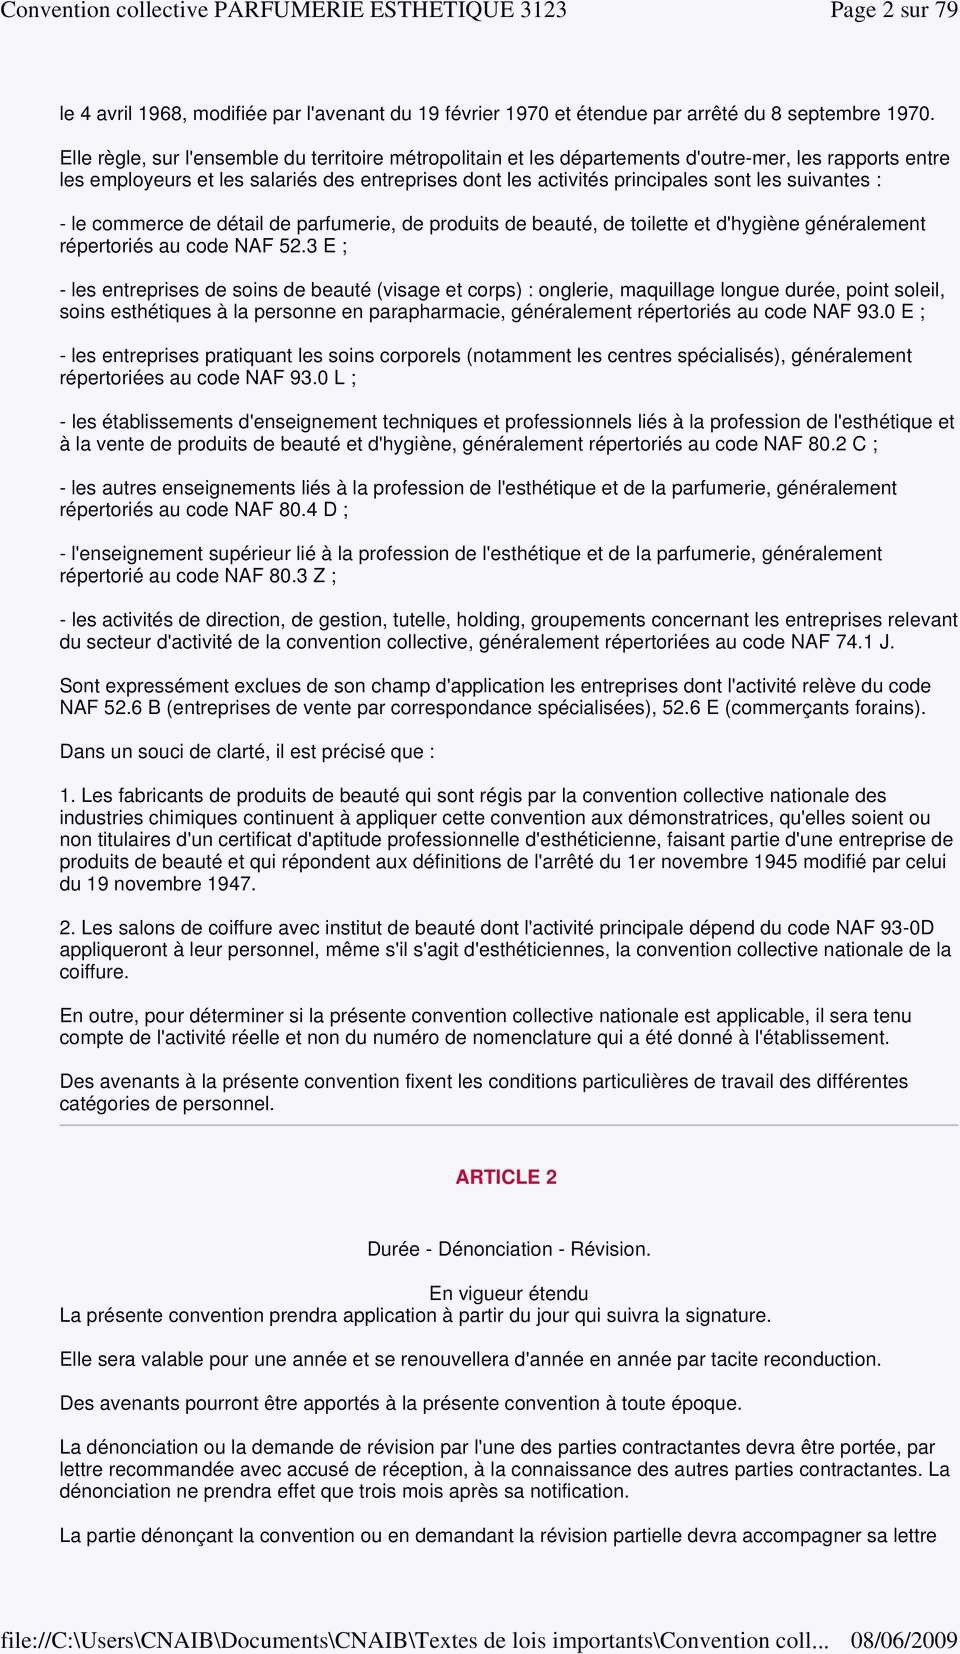 Lettre De Motivation Bts Profession Immobiliere Contrat Professionnalisation Alternance Immobilier Collections De L